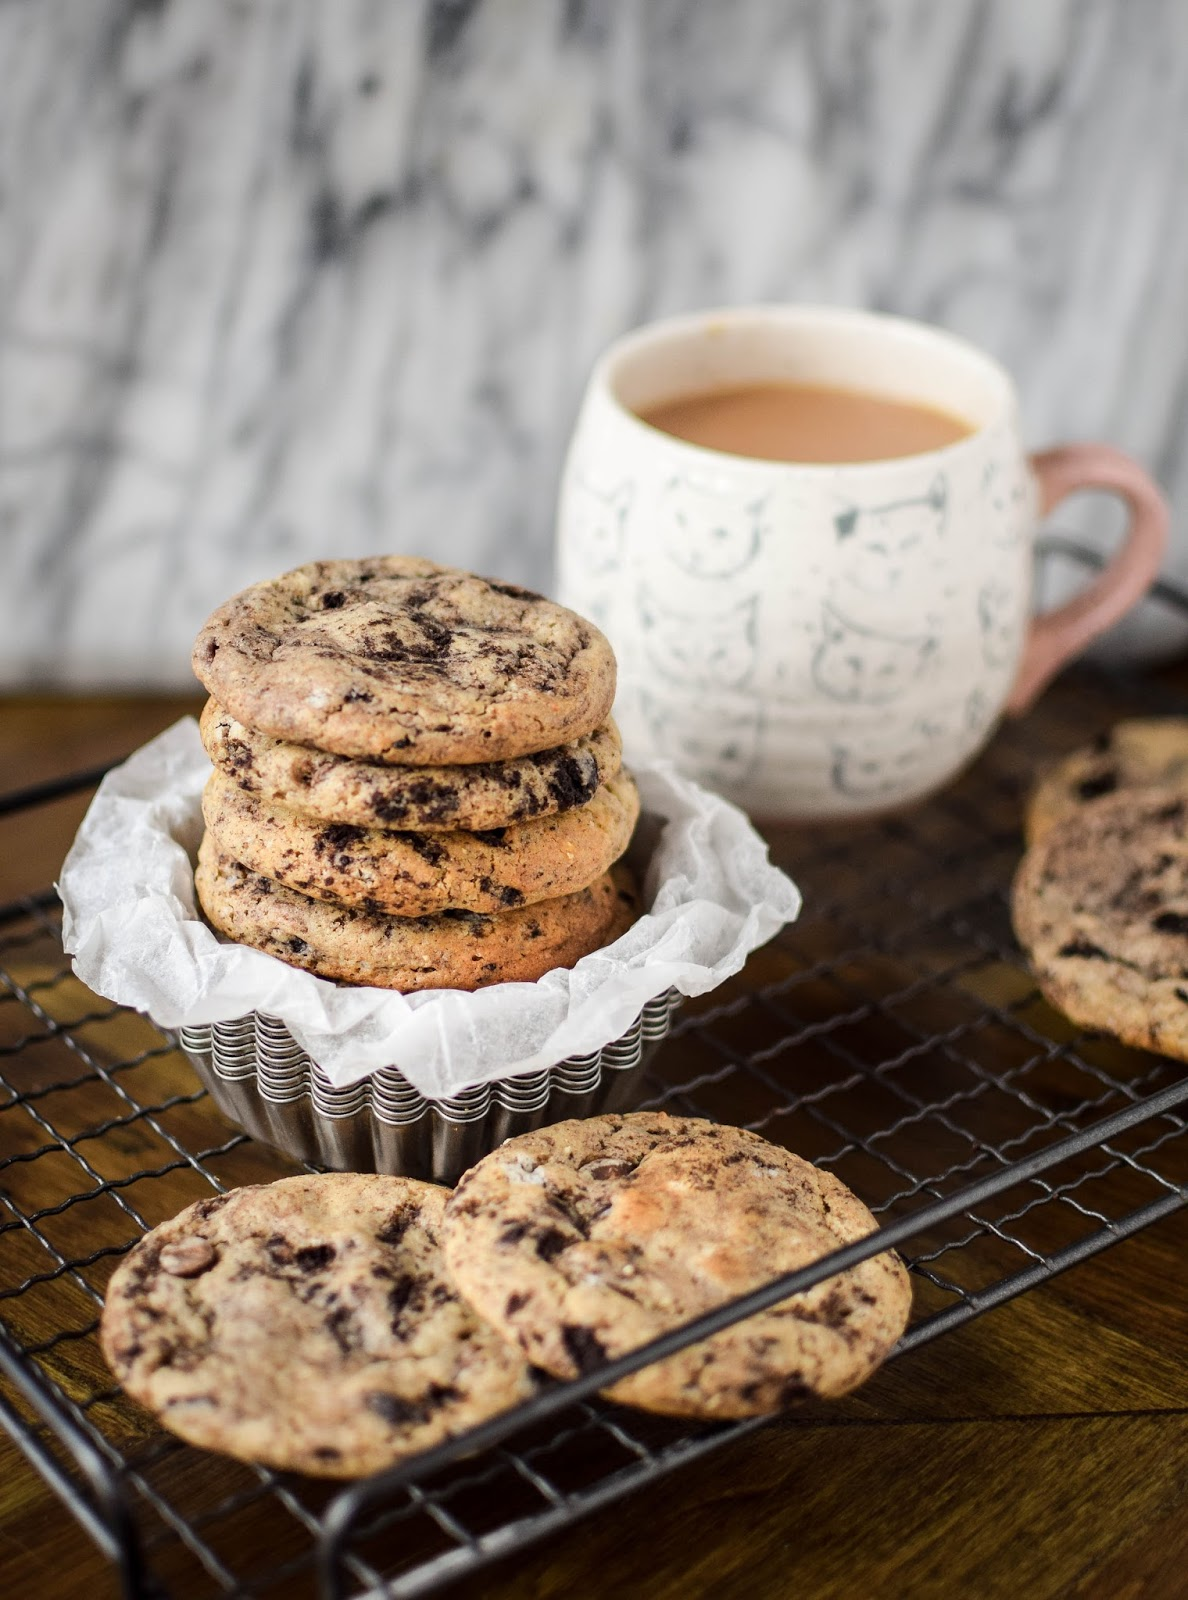 Cookies and cream cookies, that's right, a cookie studded with more cookies!